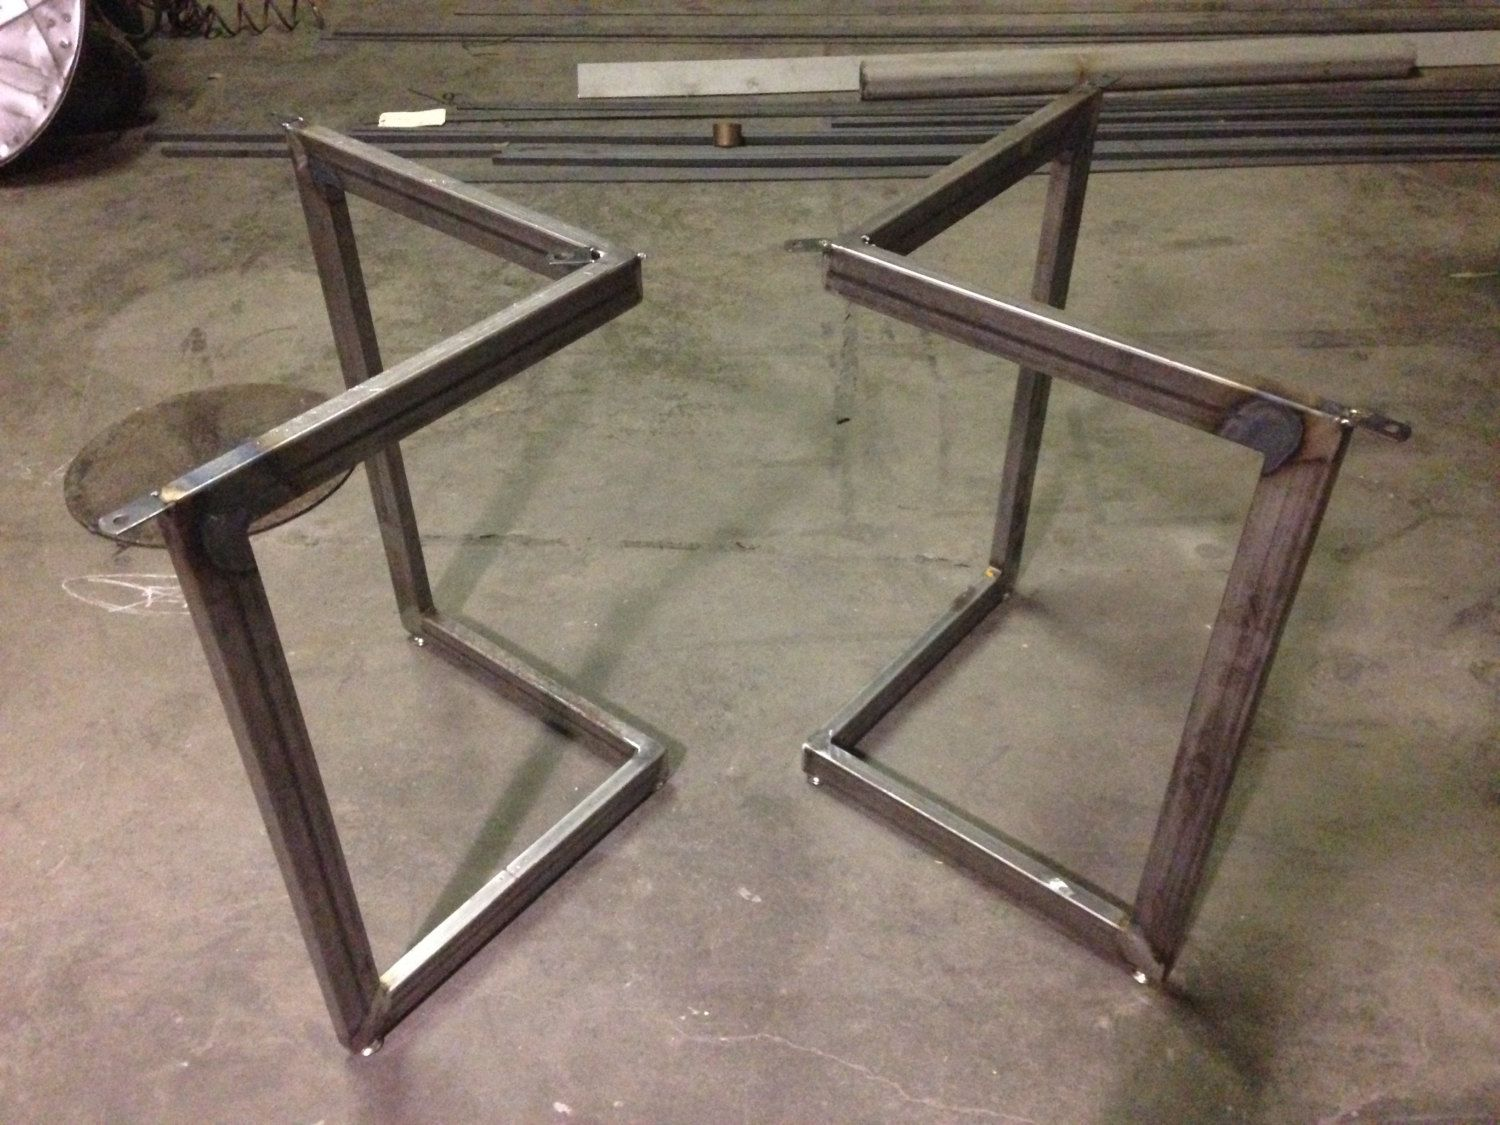 Chevron Metal Dining Table Base Legs